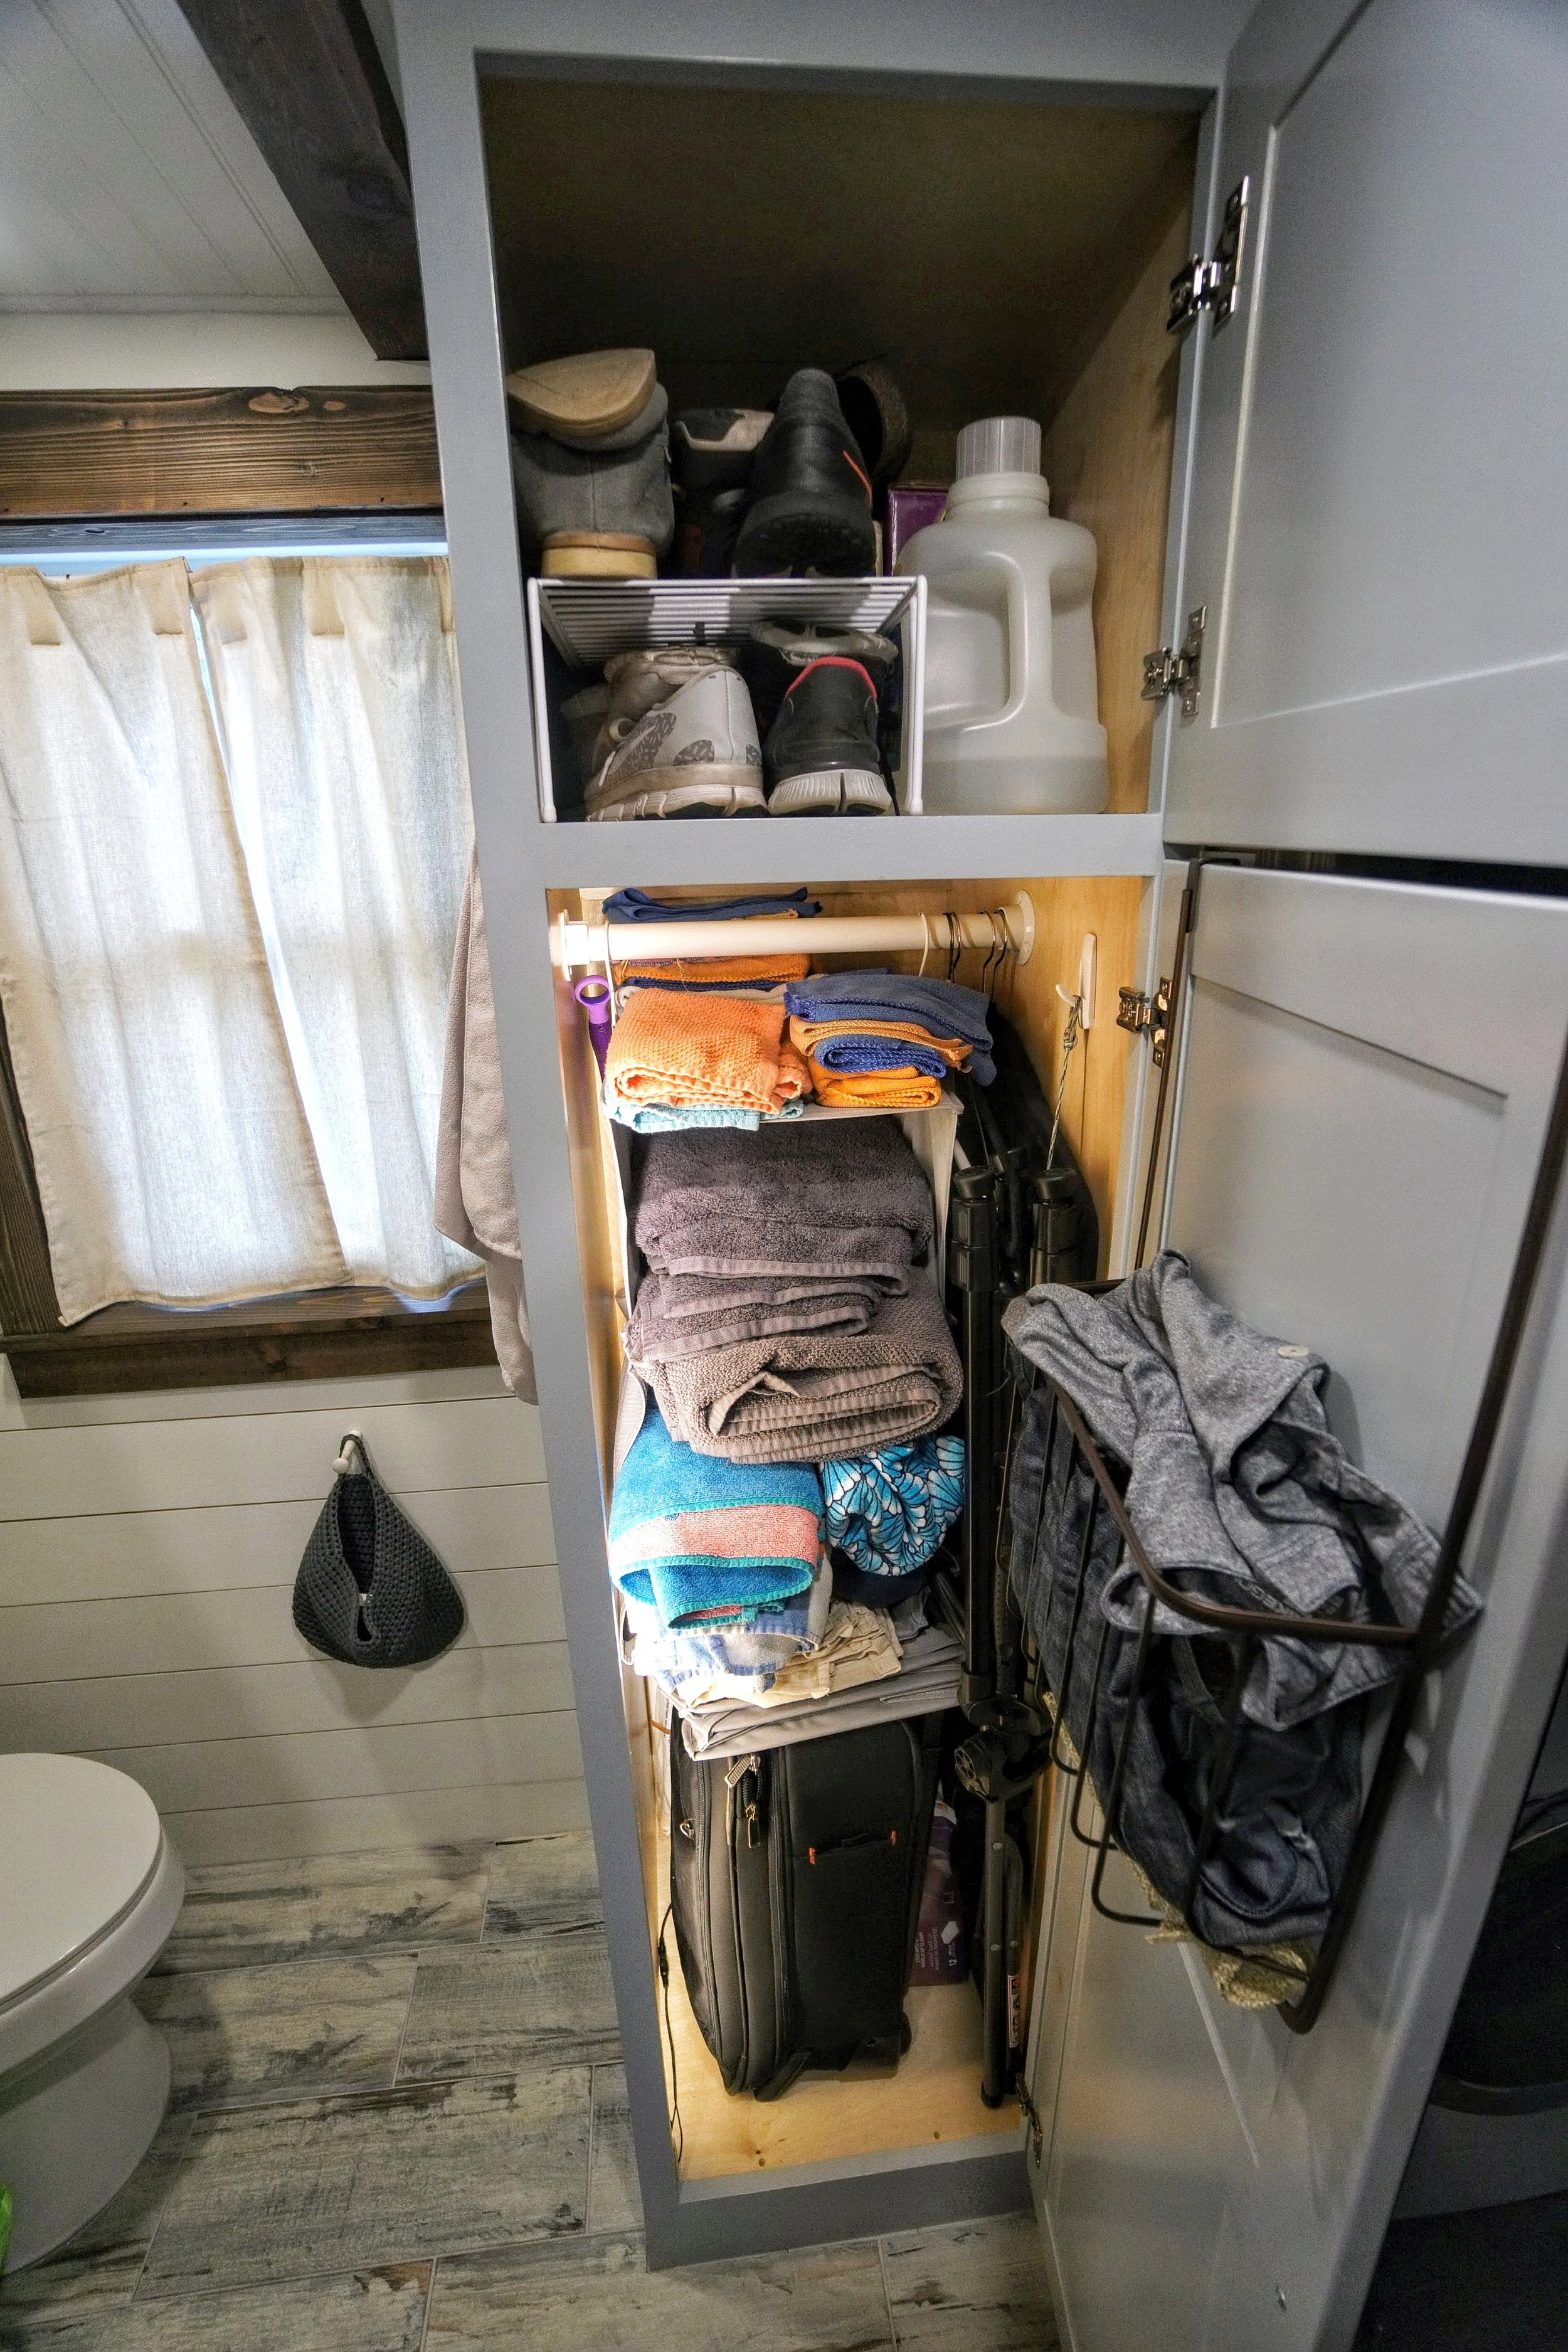 Tiny home organization closet space shoes bathroom tub shower clothes tiny house